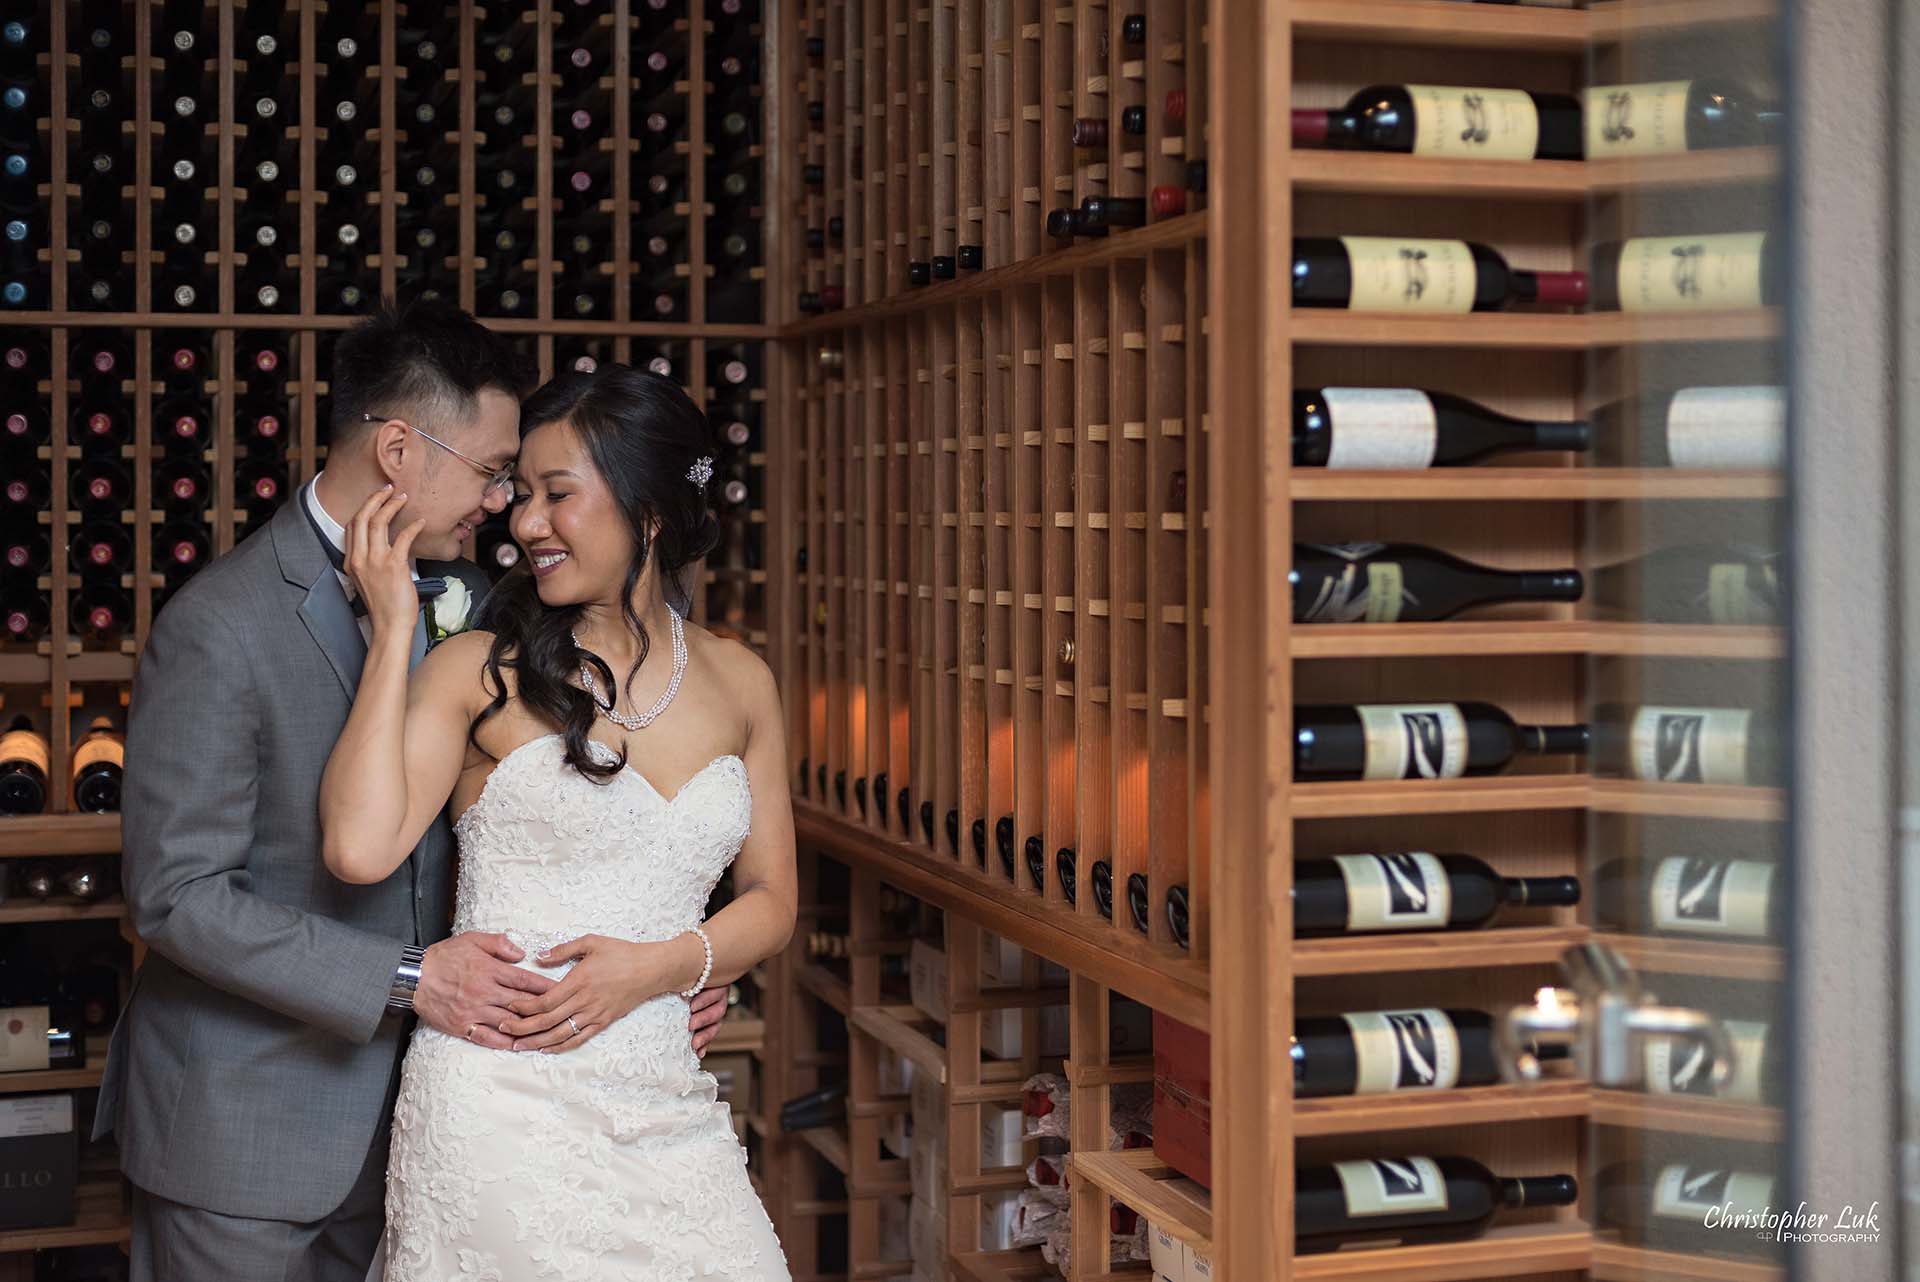 Christopher Luk Toronto Wedding Photographer Eagles Nest Golf Club Course Together Bride Groom Hold Hug Candid Natural Photojournalistic Nest Wine Cellar Intimate Left